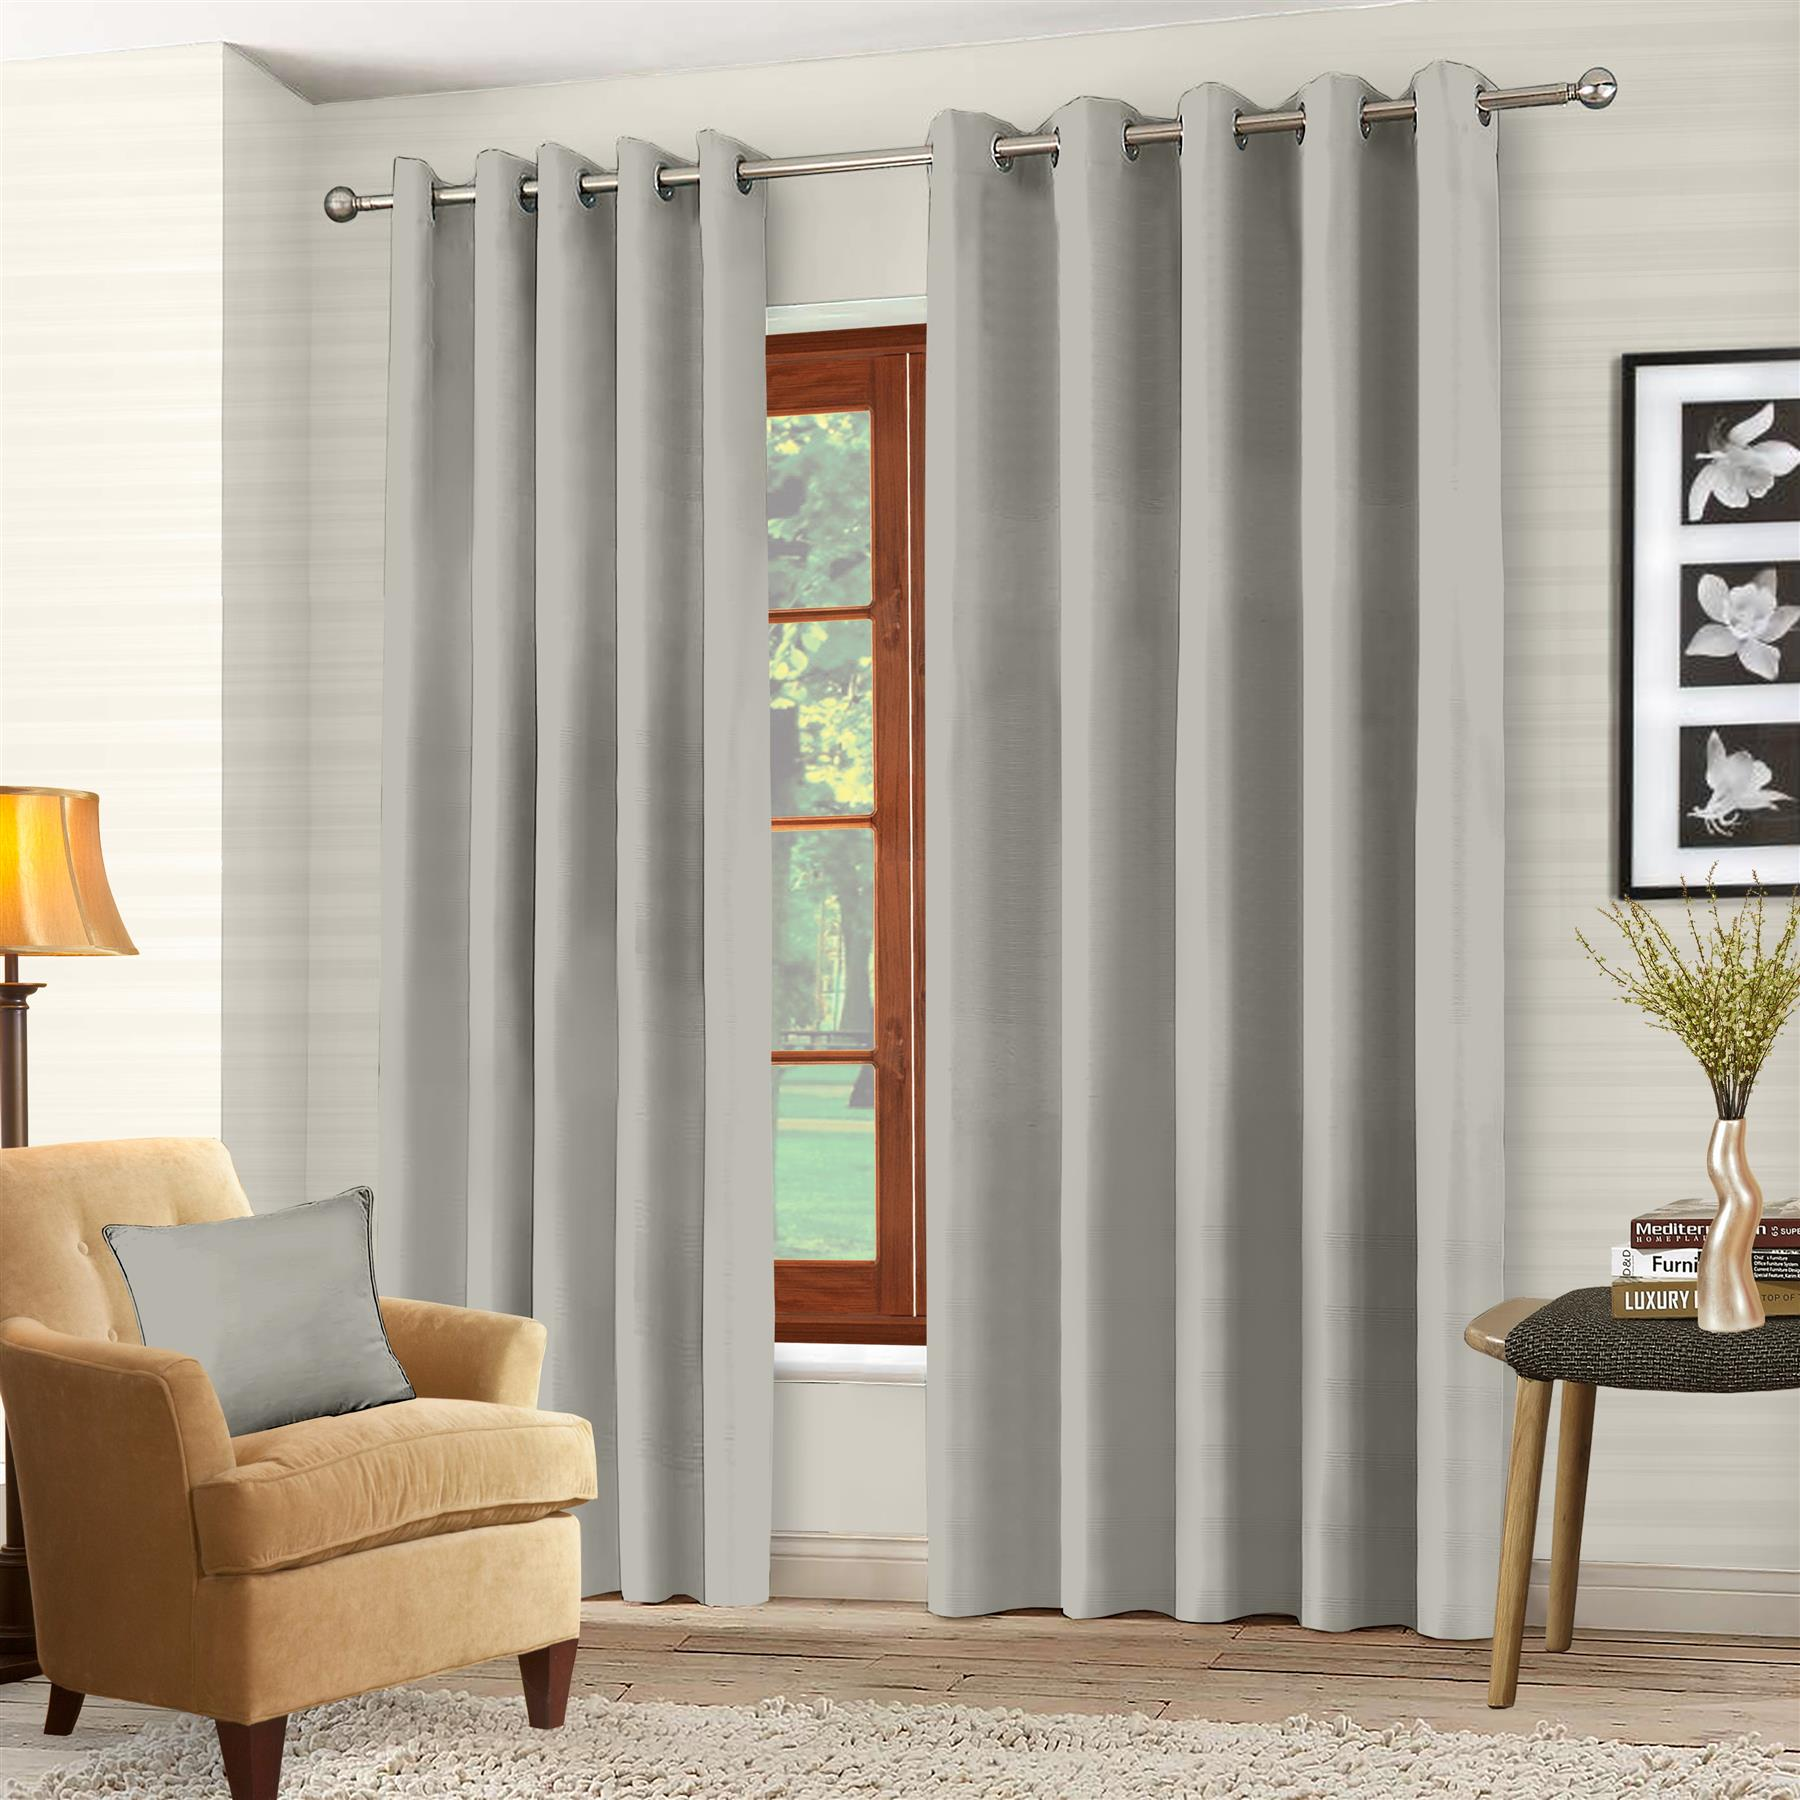 Luxury-Thermal-Blackout-Eyelet-Ring-Top-Curtains-Pair-with-tie-backs thumbnail 47